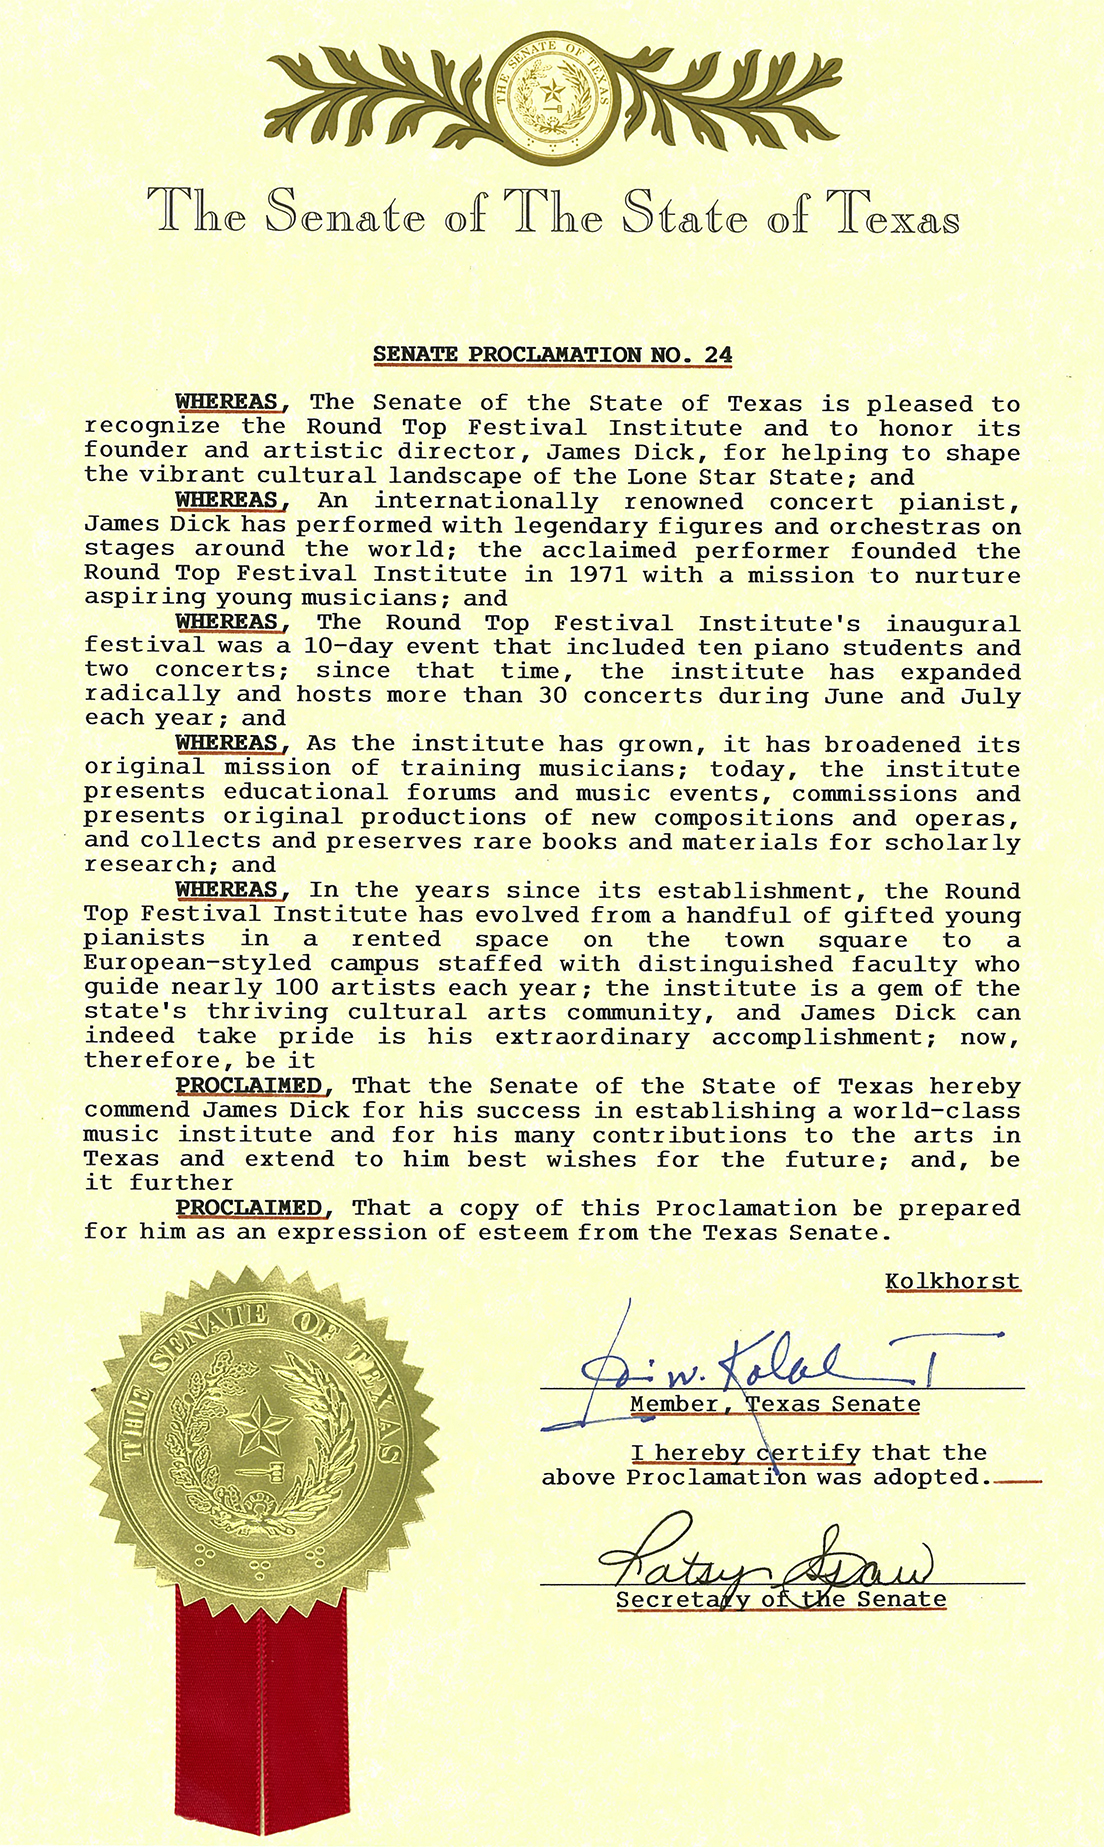 Texas Senate Proclamation No. 24